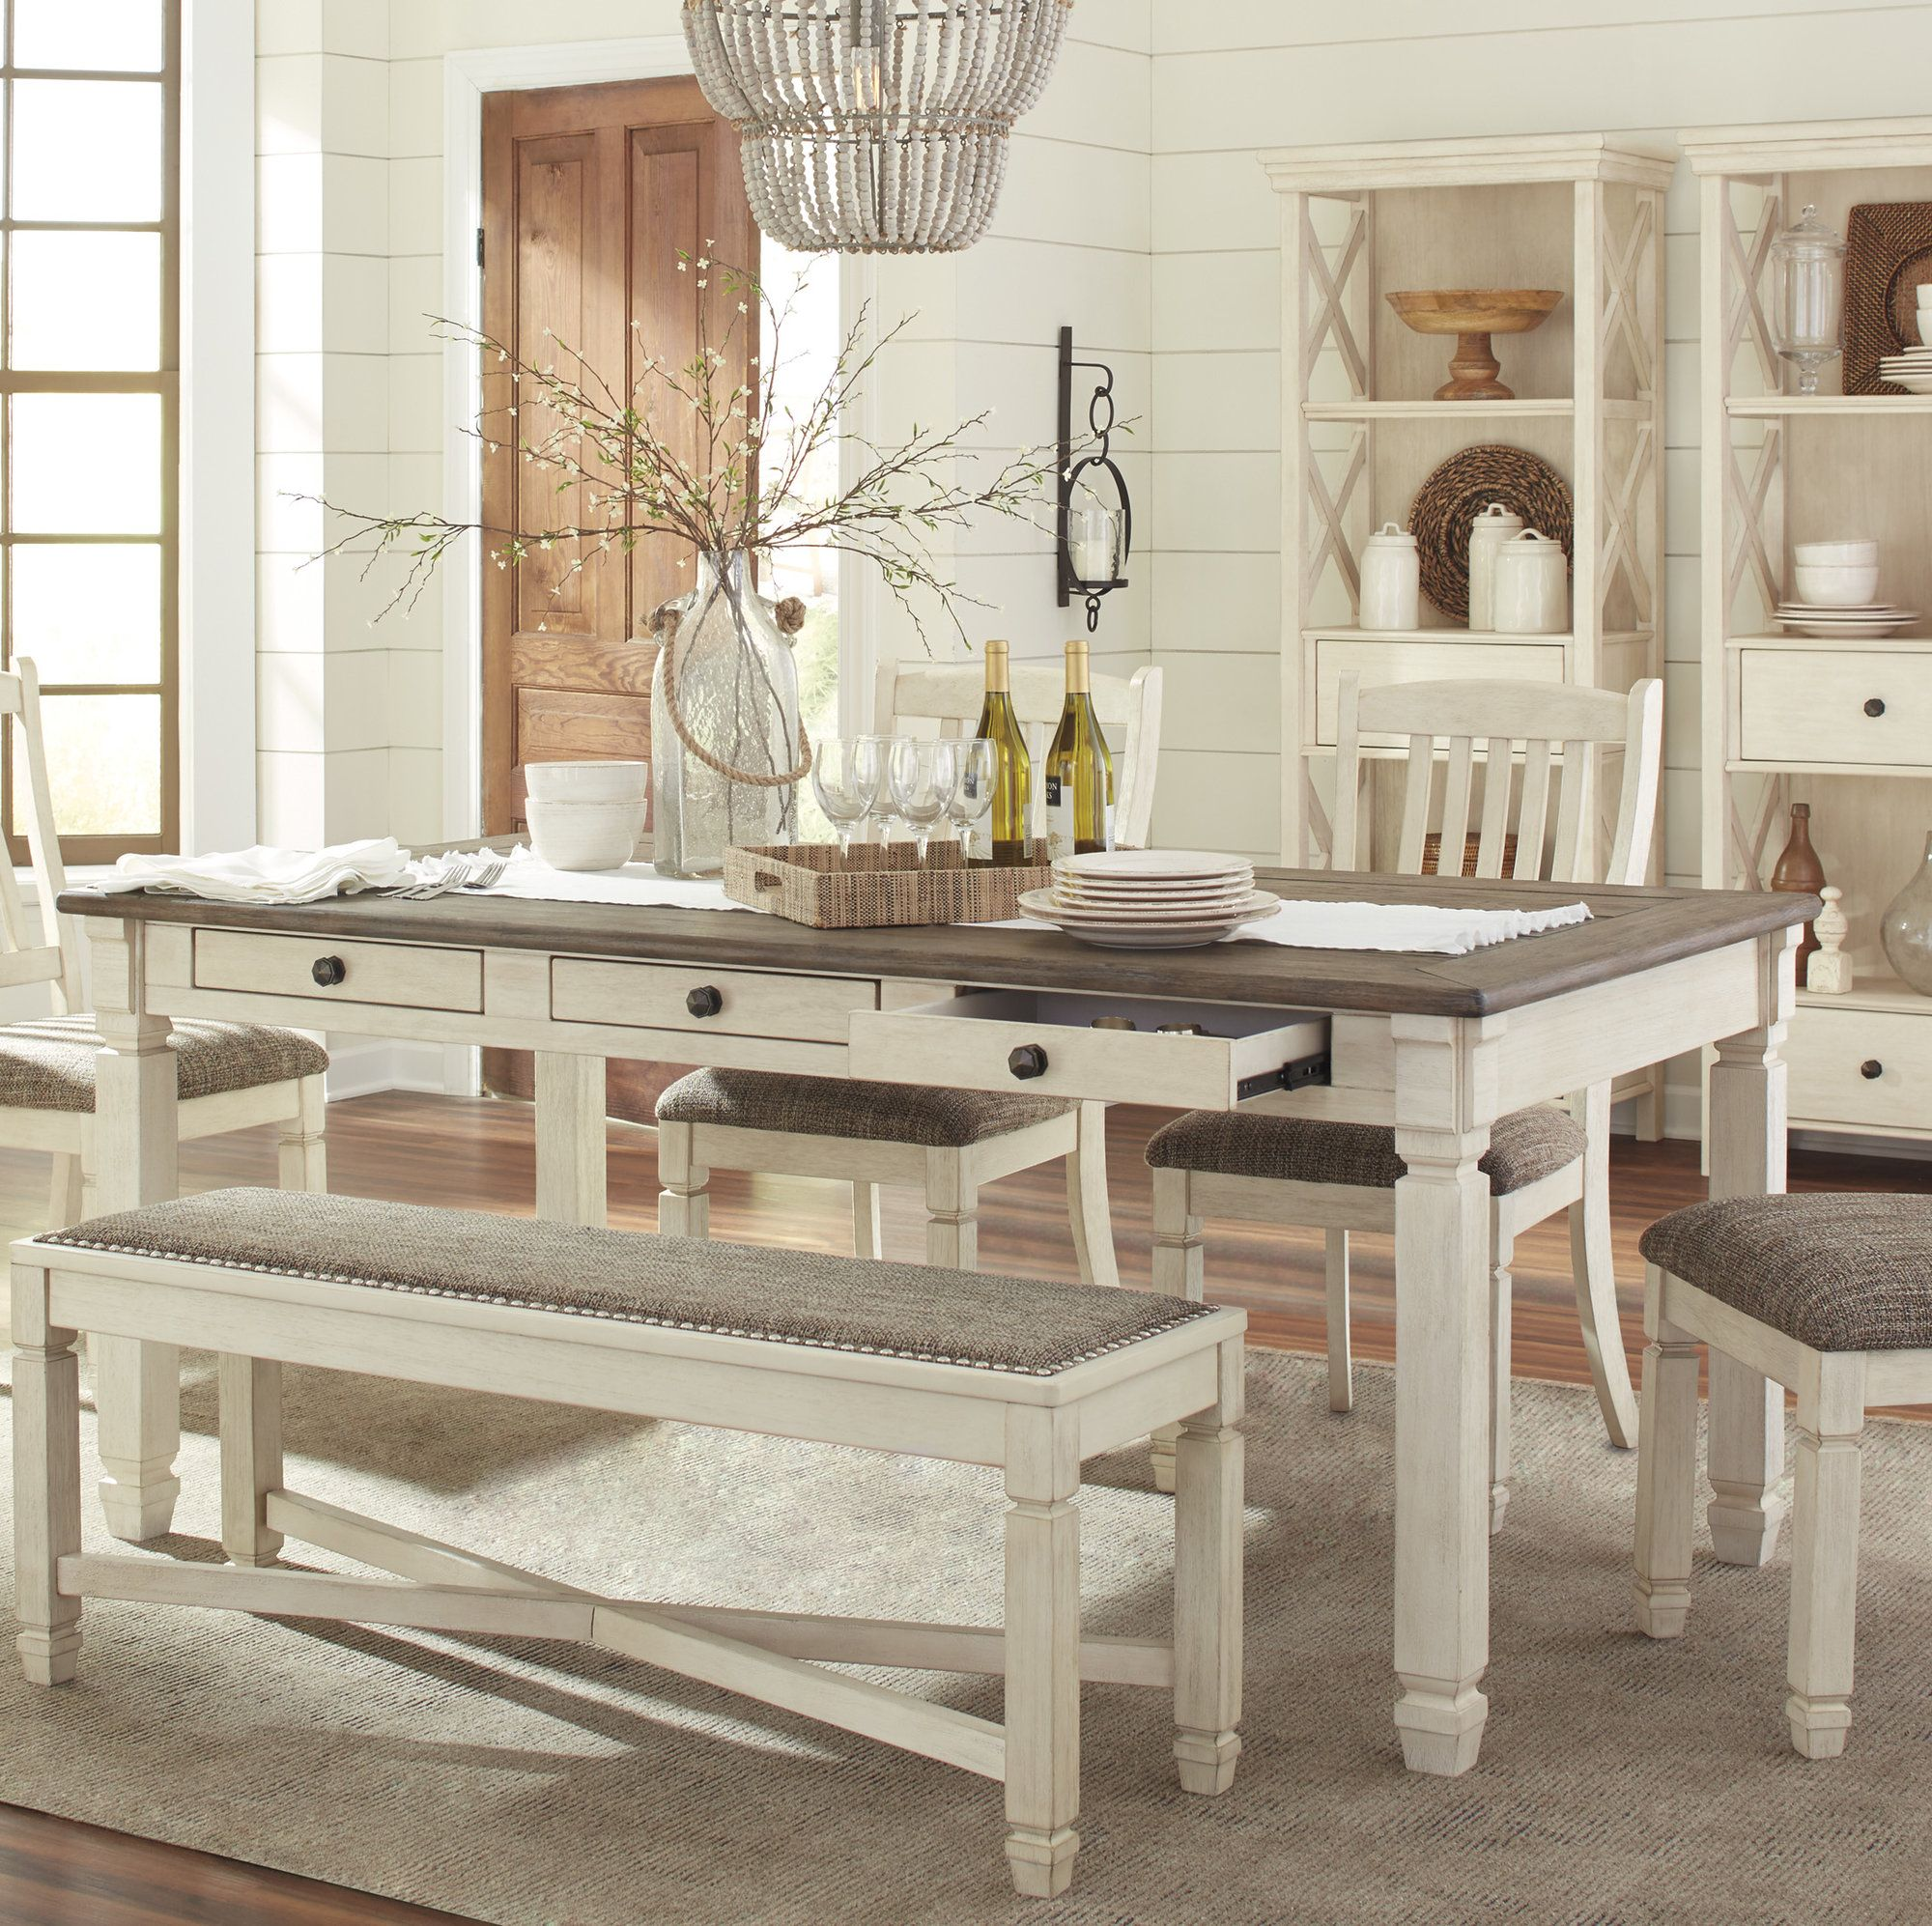 Amberlyn Counter Height Dining Table Dining Table In Kitchen